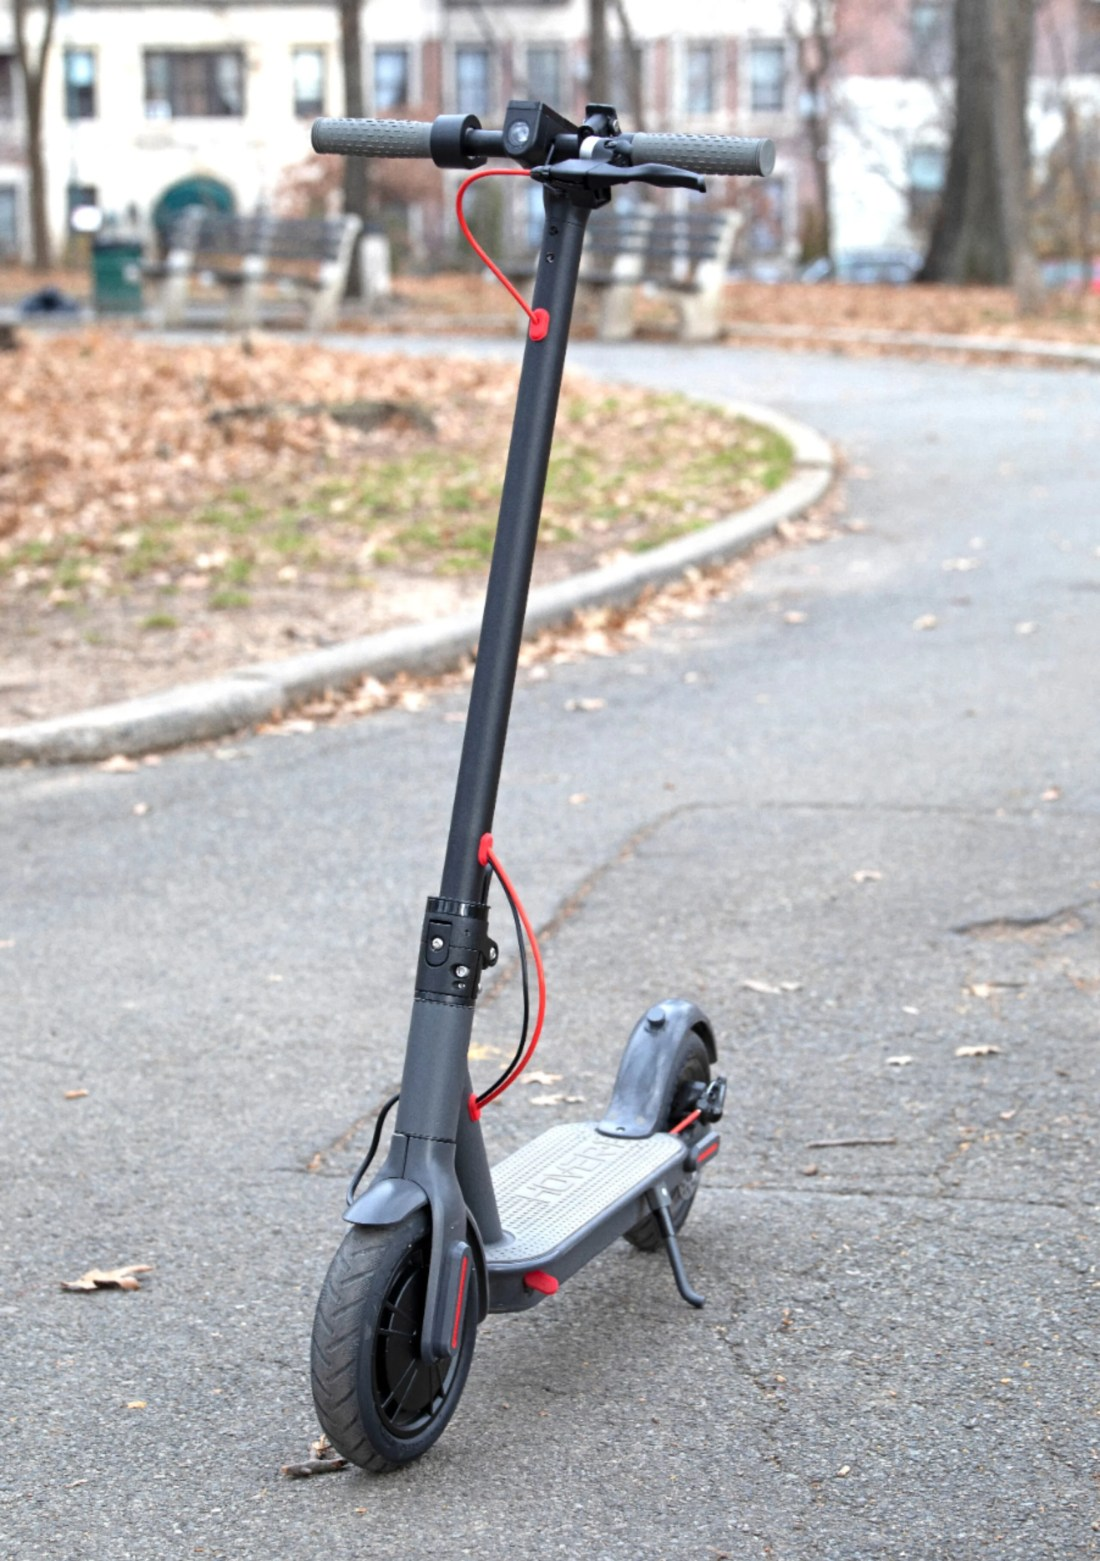 Hover-1 Electric Folding Scooter. Ride in style back to school with the Hover-1 Electric Folding Scooter